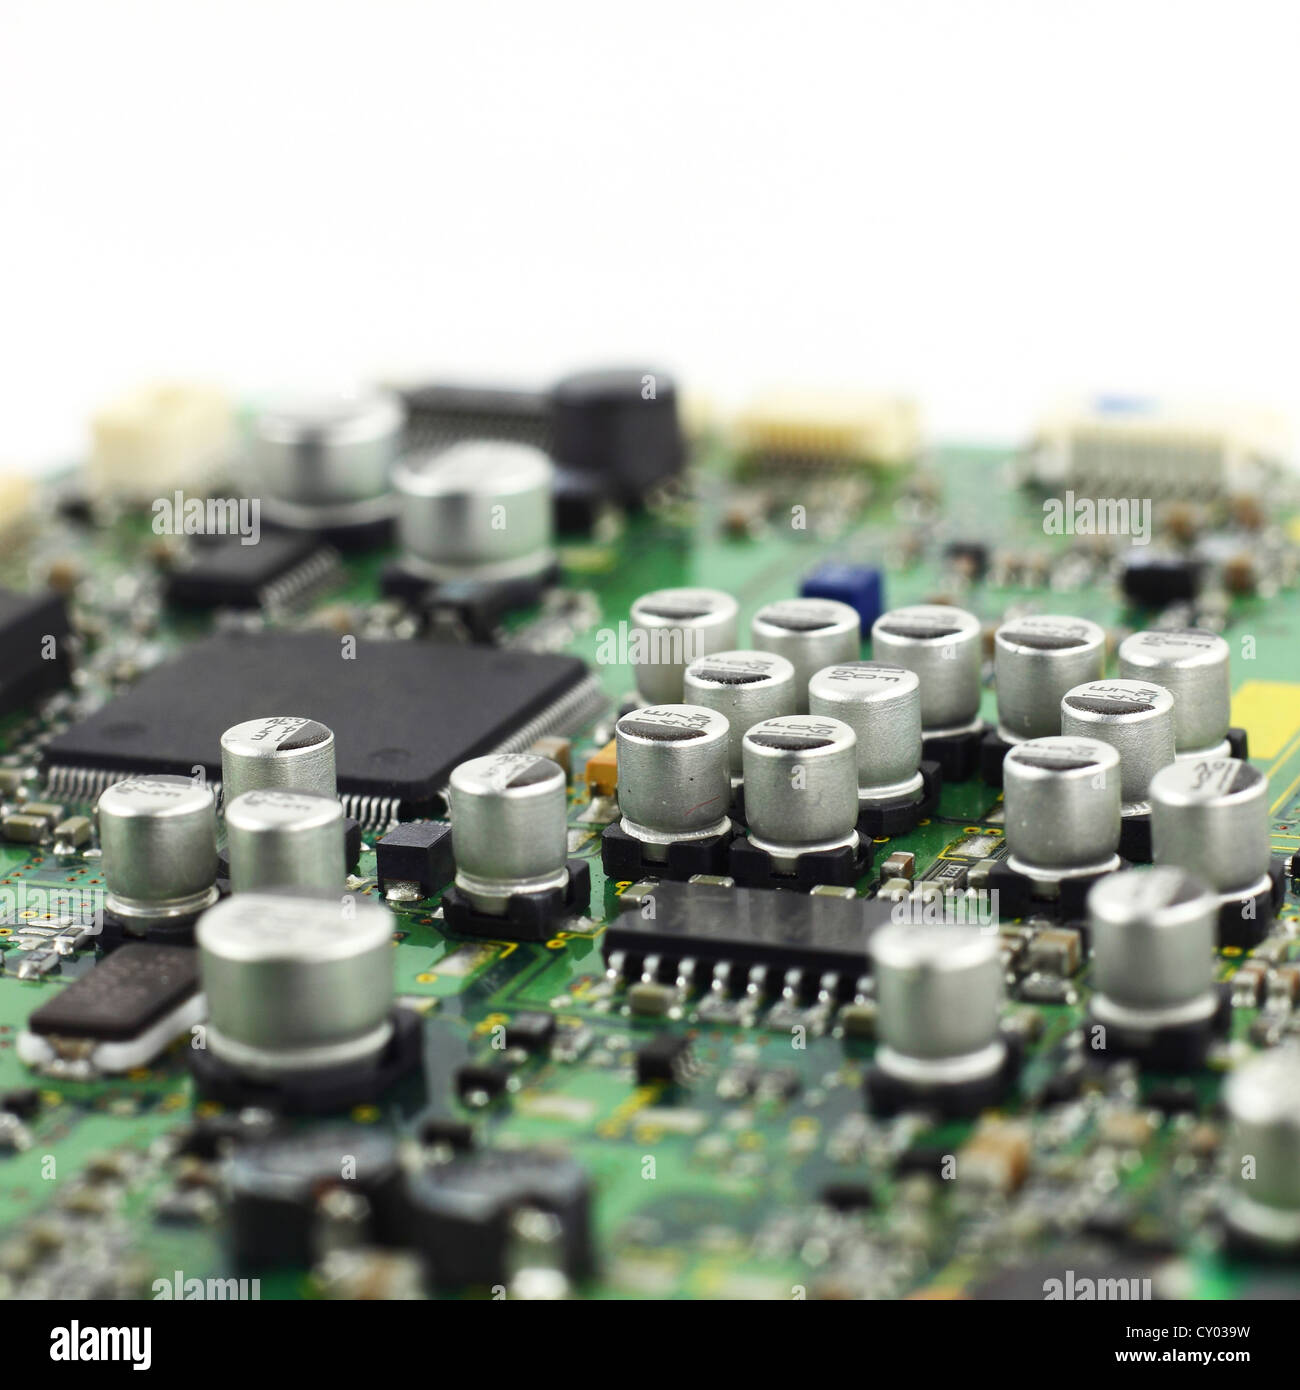 Electronics Manufacturing Stock Photos Printed Circuit Board Assembly Pcba China Electronic And Digital Hardware Closeup Microchips Condensers On The Macro Image